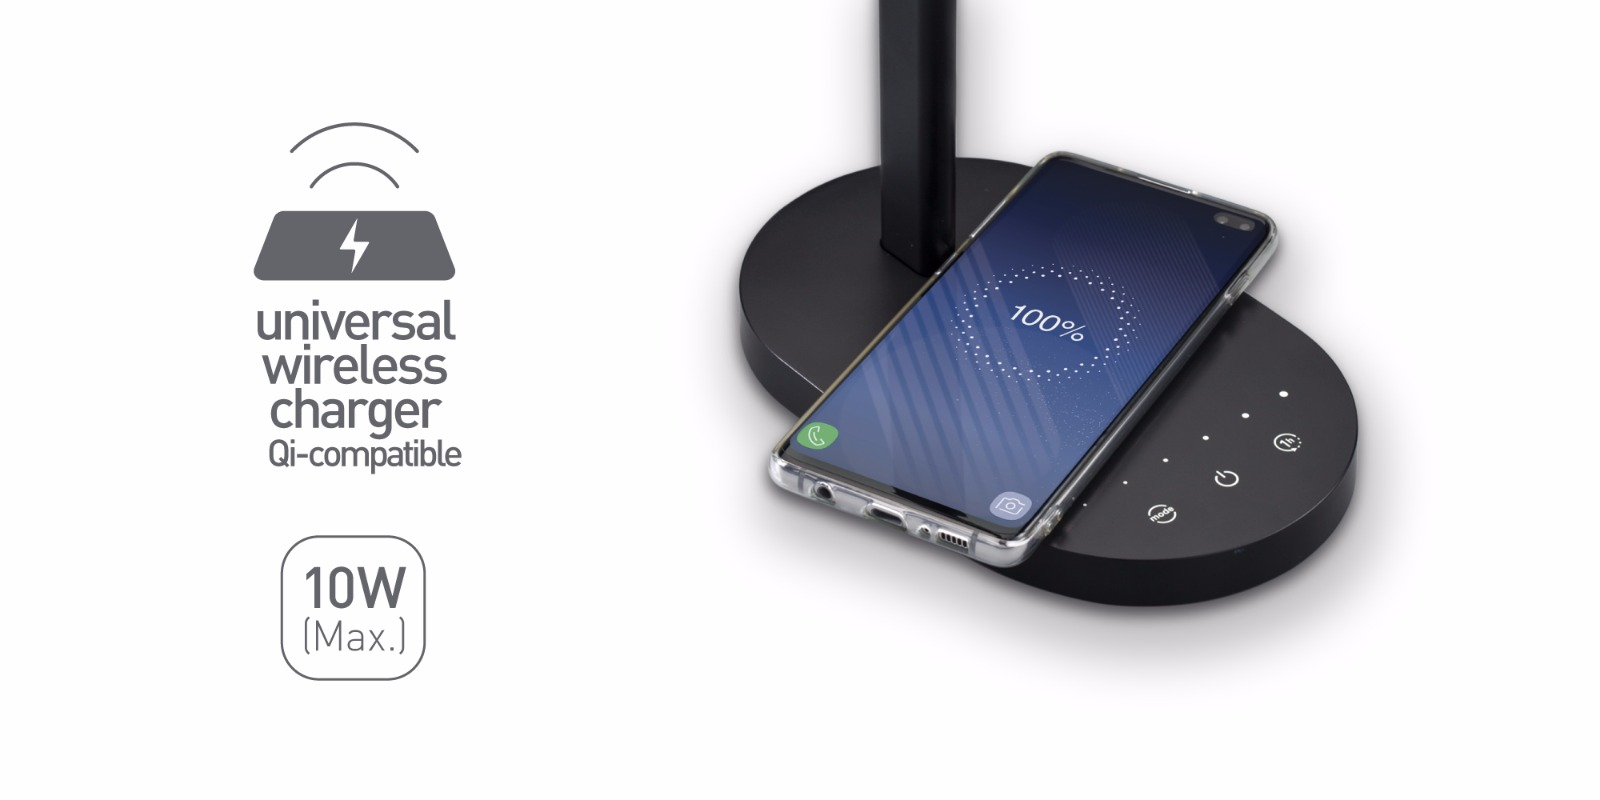 Universal wireless charger for QI-compatible devices